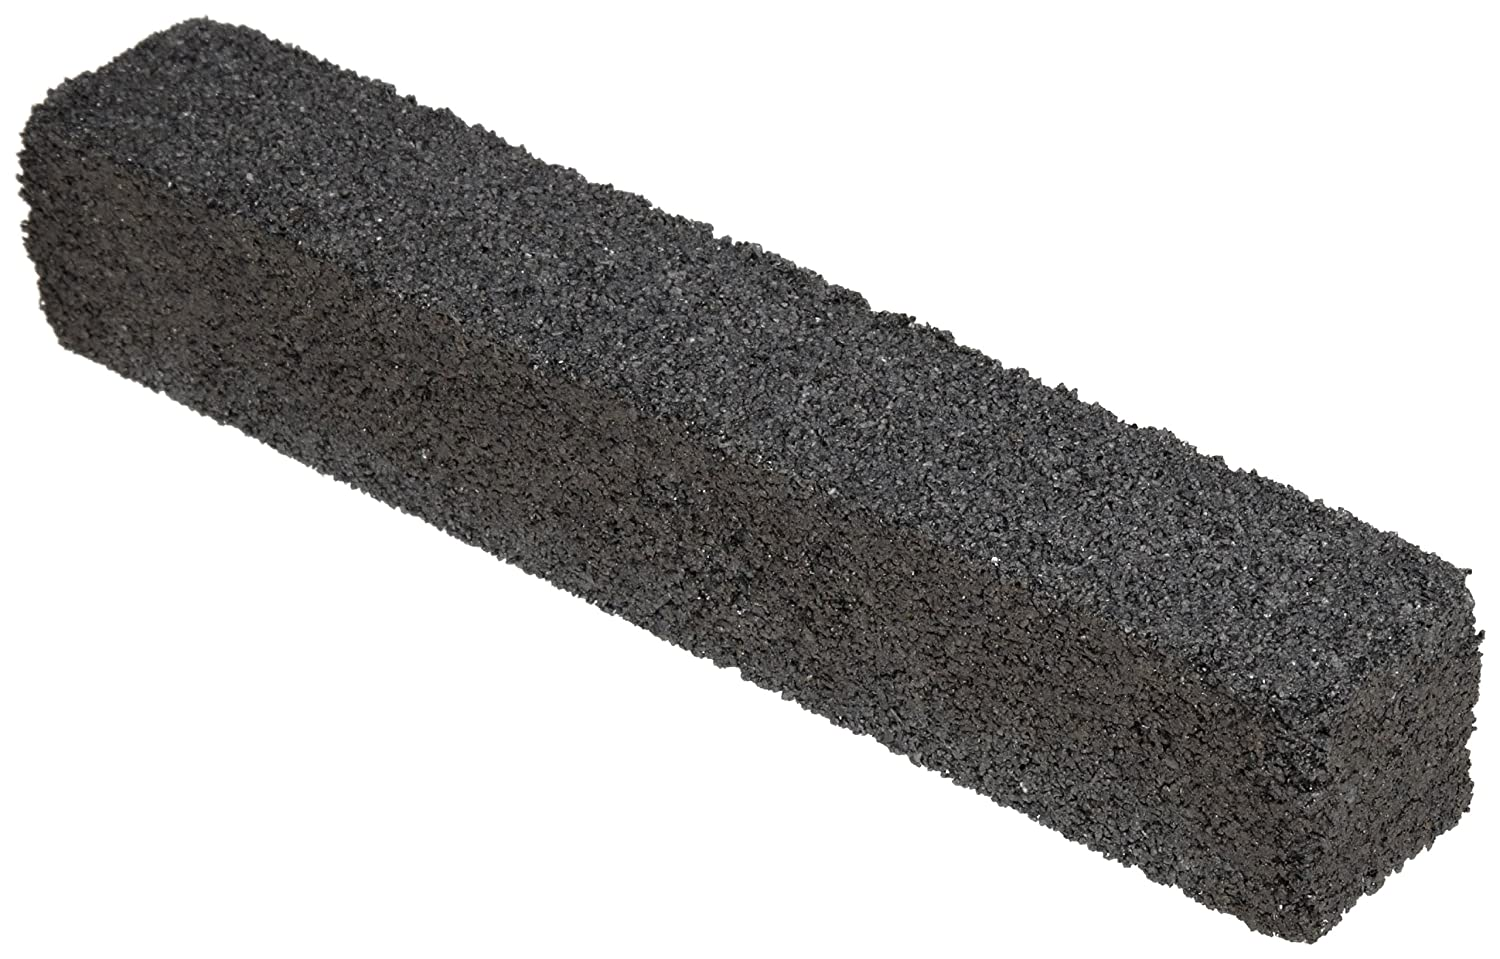 Norton 37C Vitrified Abrasive Dressing Stick, Silicon Carbide, 6' Length x 1' Width x 1' Thickness, Grit 24 (Pack of 5) 6 Length x 1 Width x 1 Thickness St. Gobain Abrasives